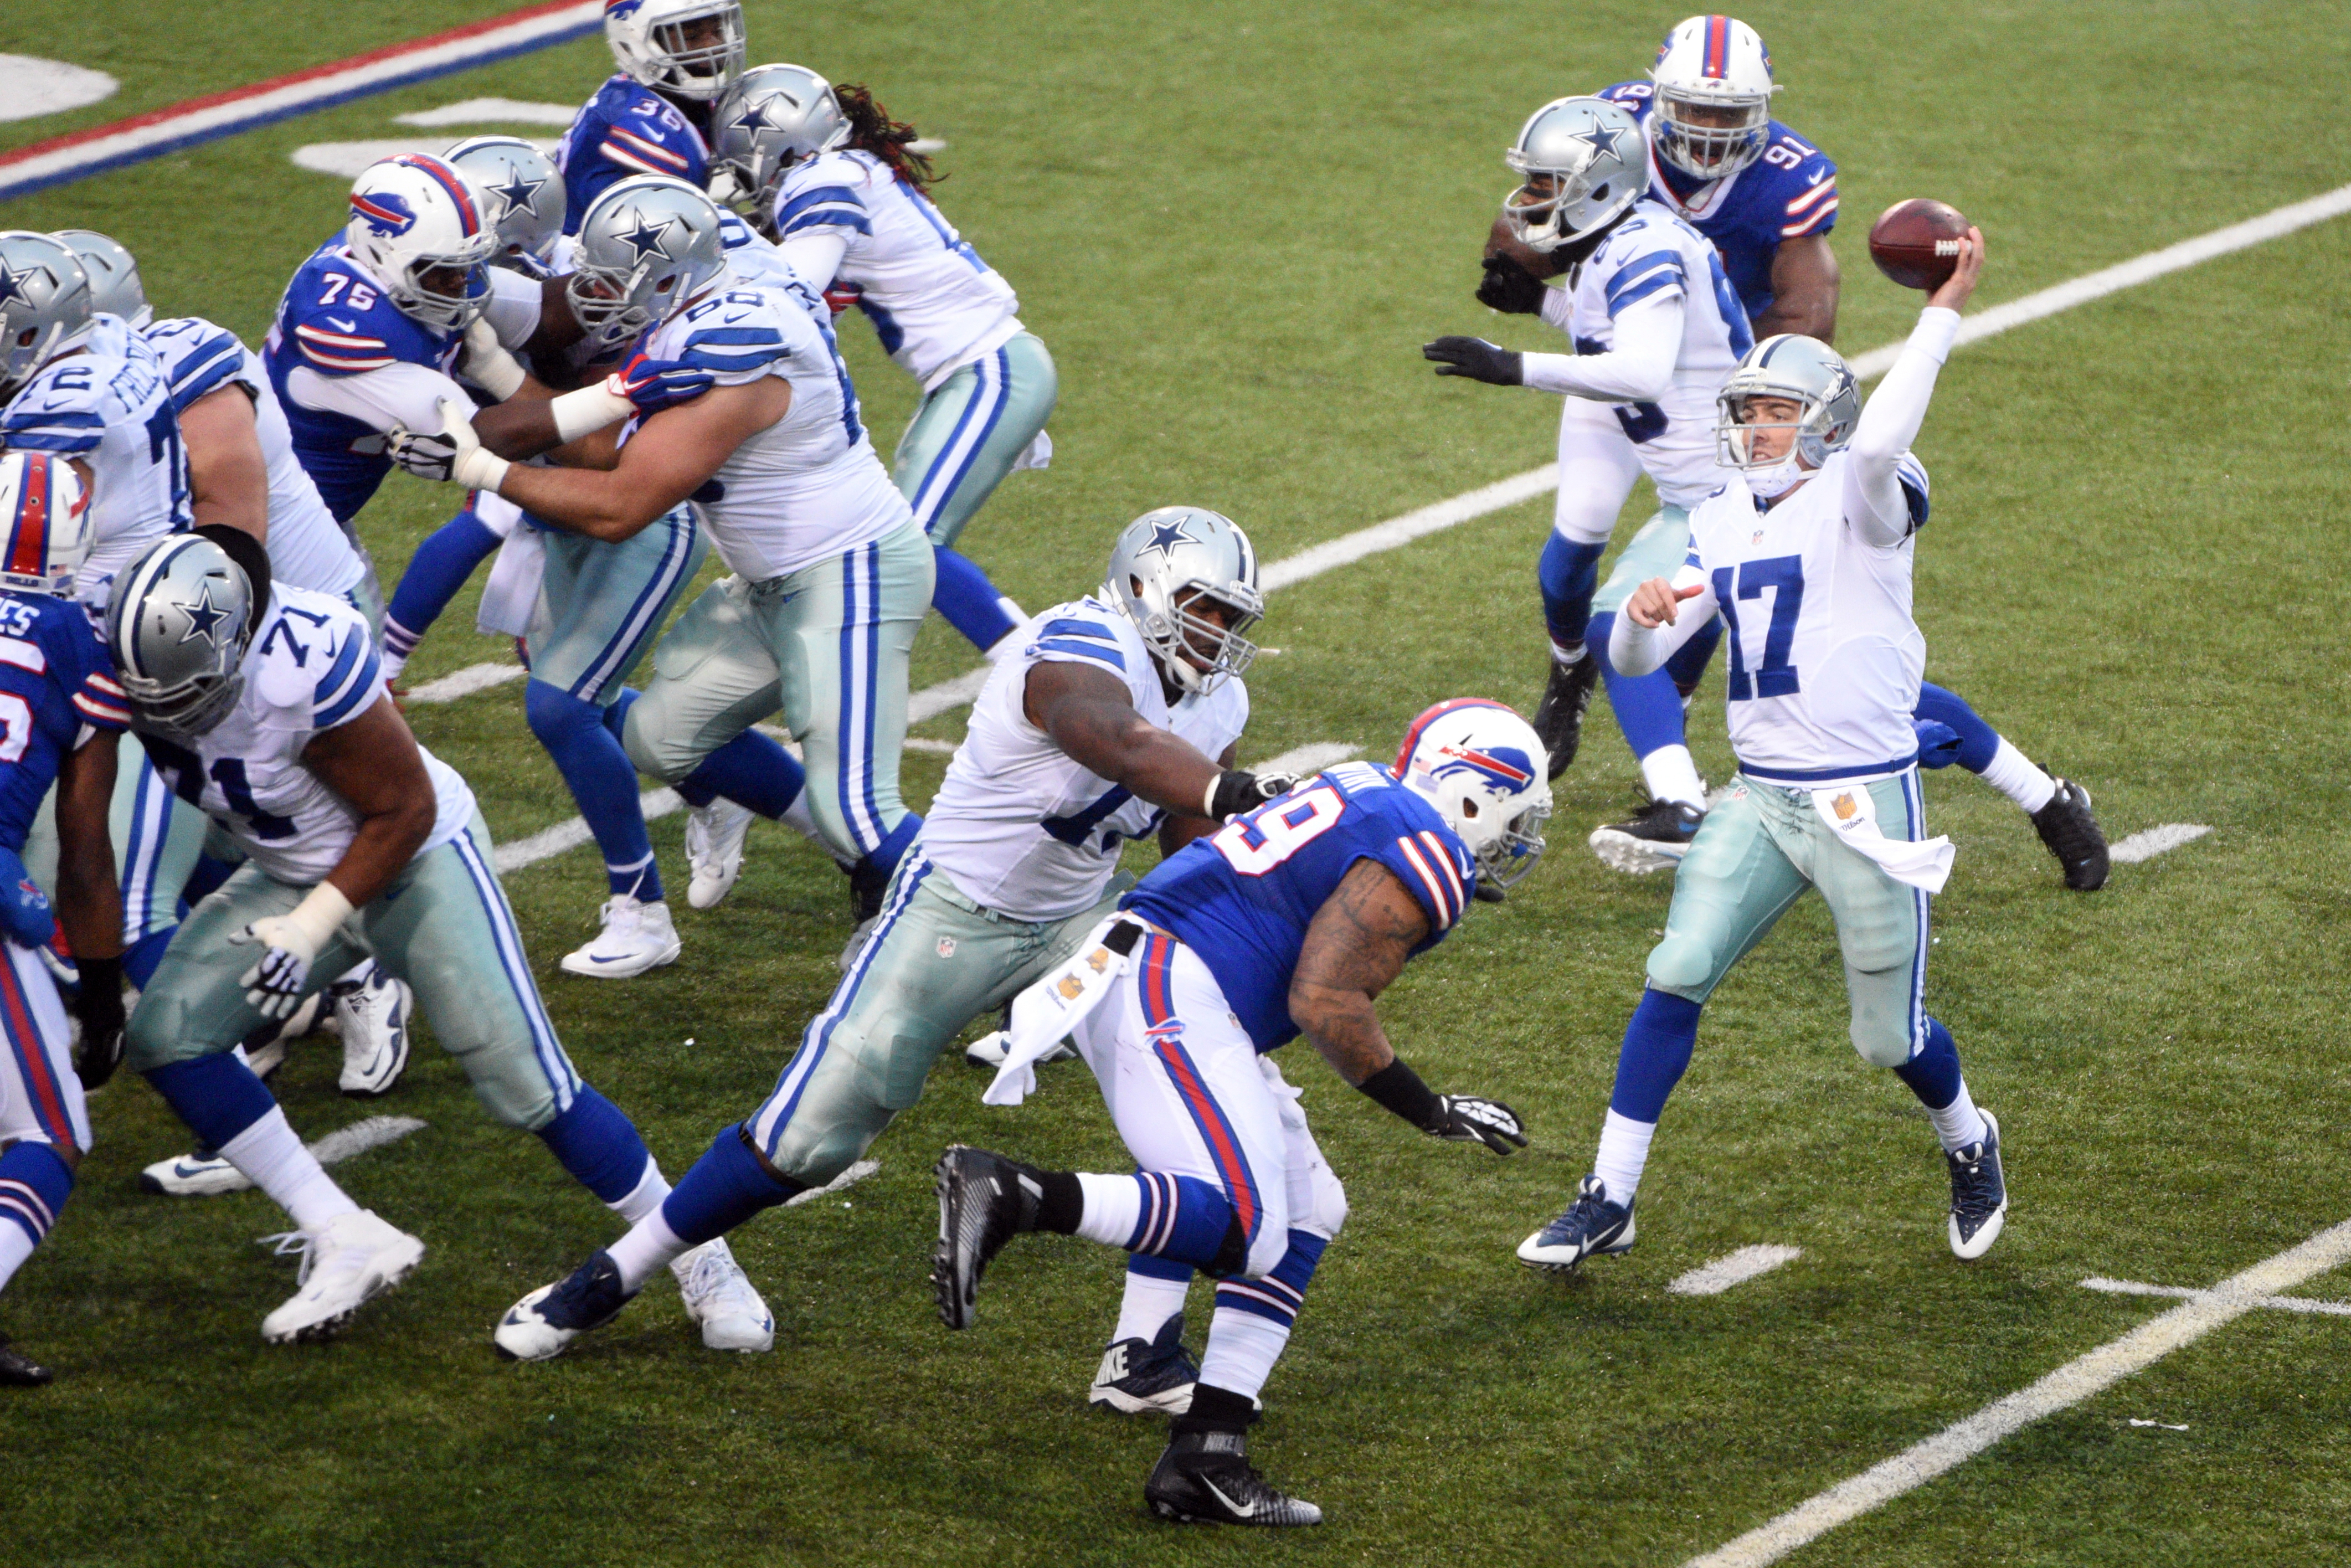 Dallas Cowboys quarterback Kellen Moore (17) throws a pass against the Buffalo Bills during the second half of an NFL football game, Sunday, Dec. 27, 2015, in Orchard Park, N.Y. (AP Photo/Gary Wiepert)